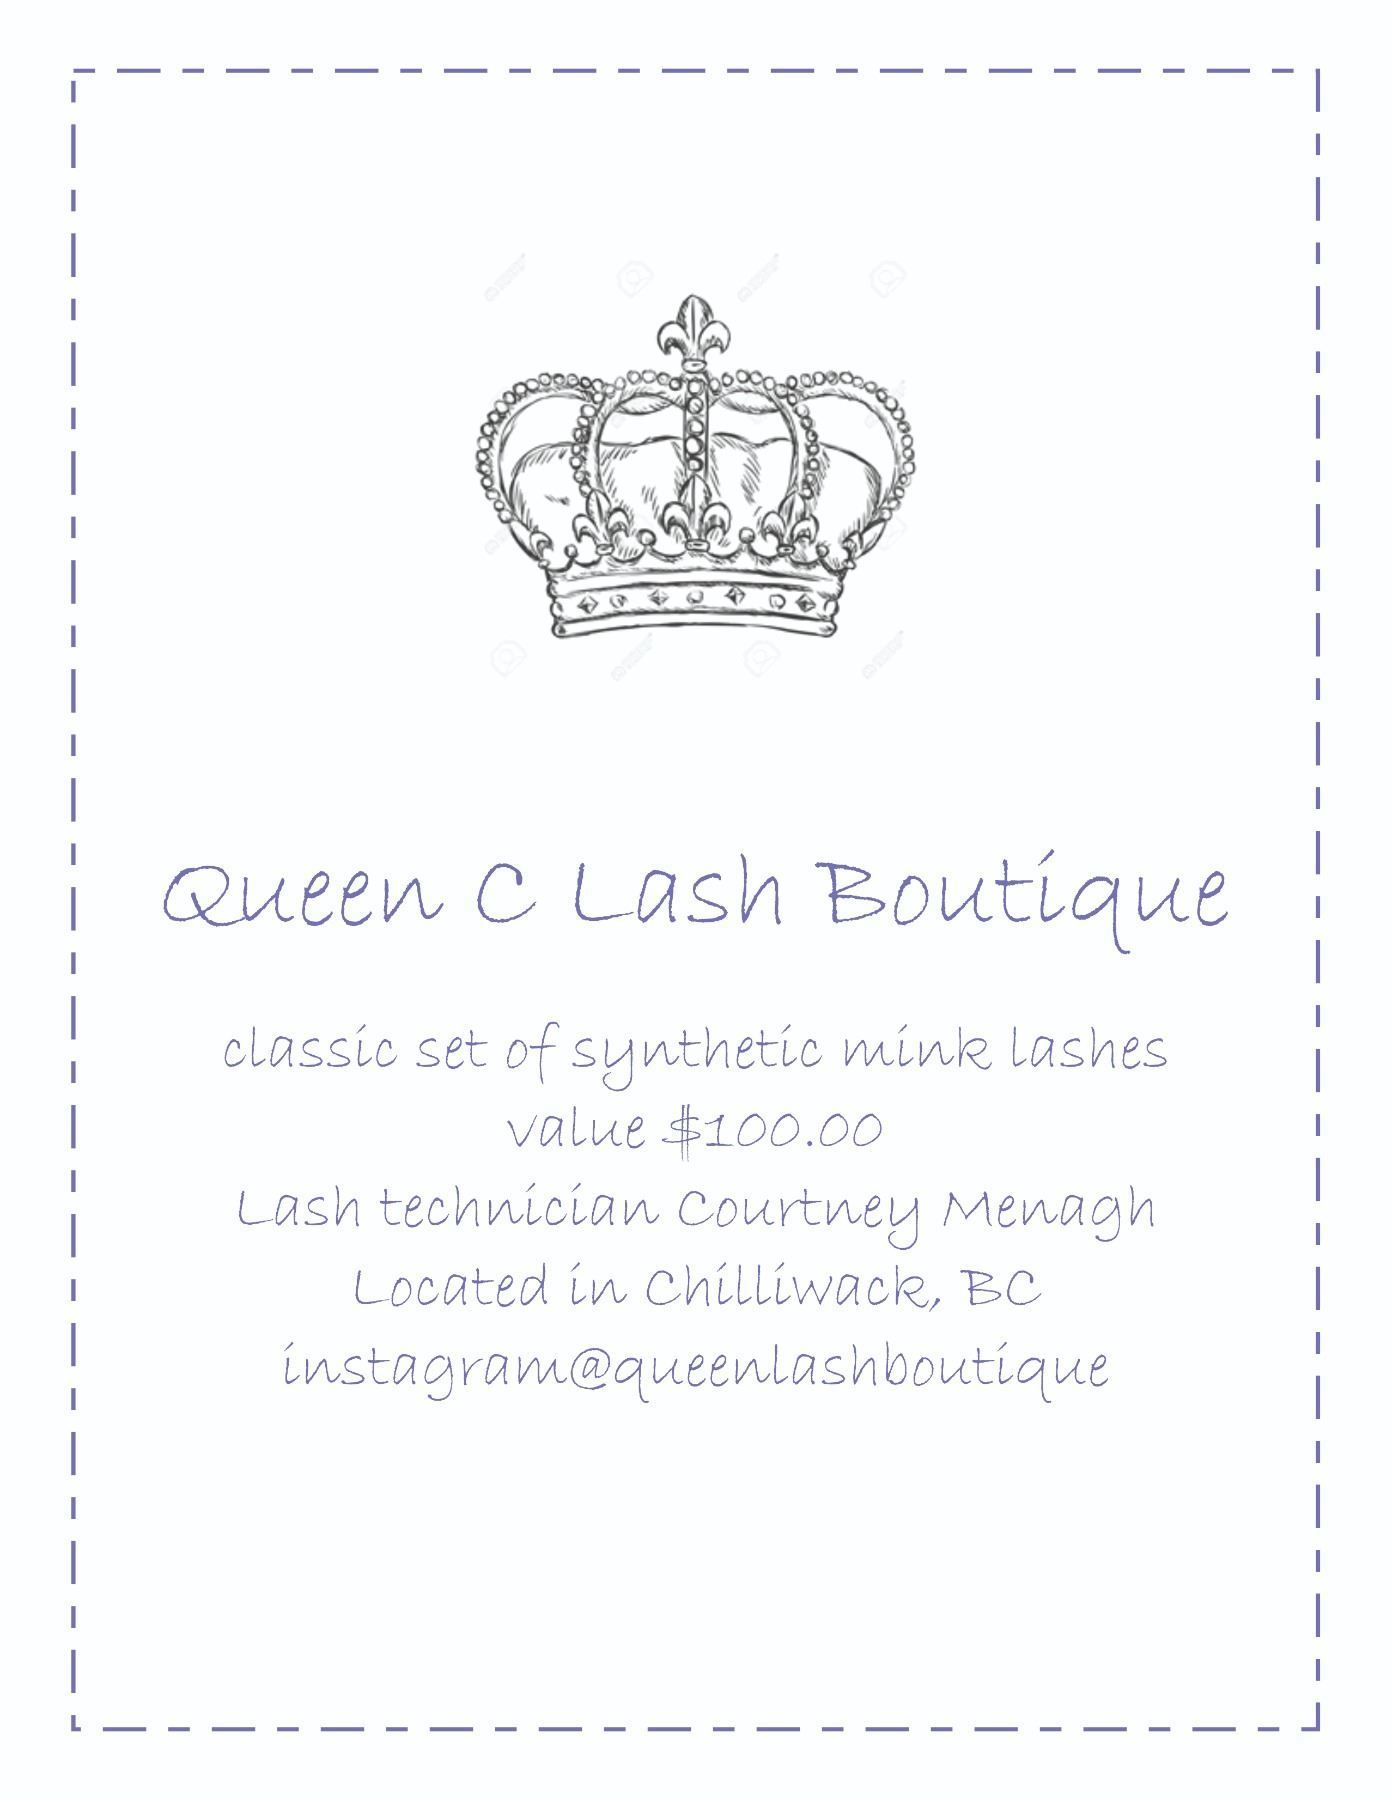 Synthetic Mink Lashes